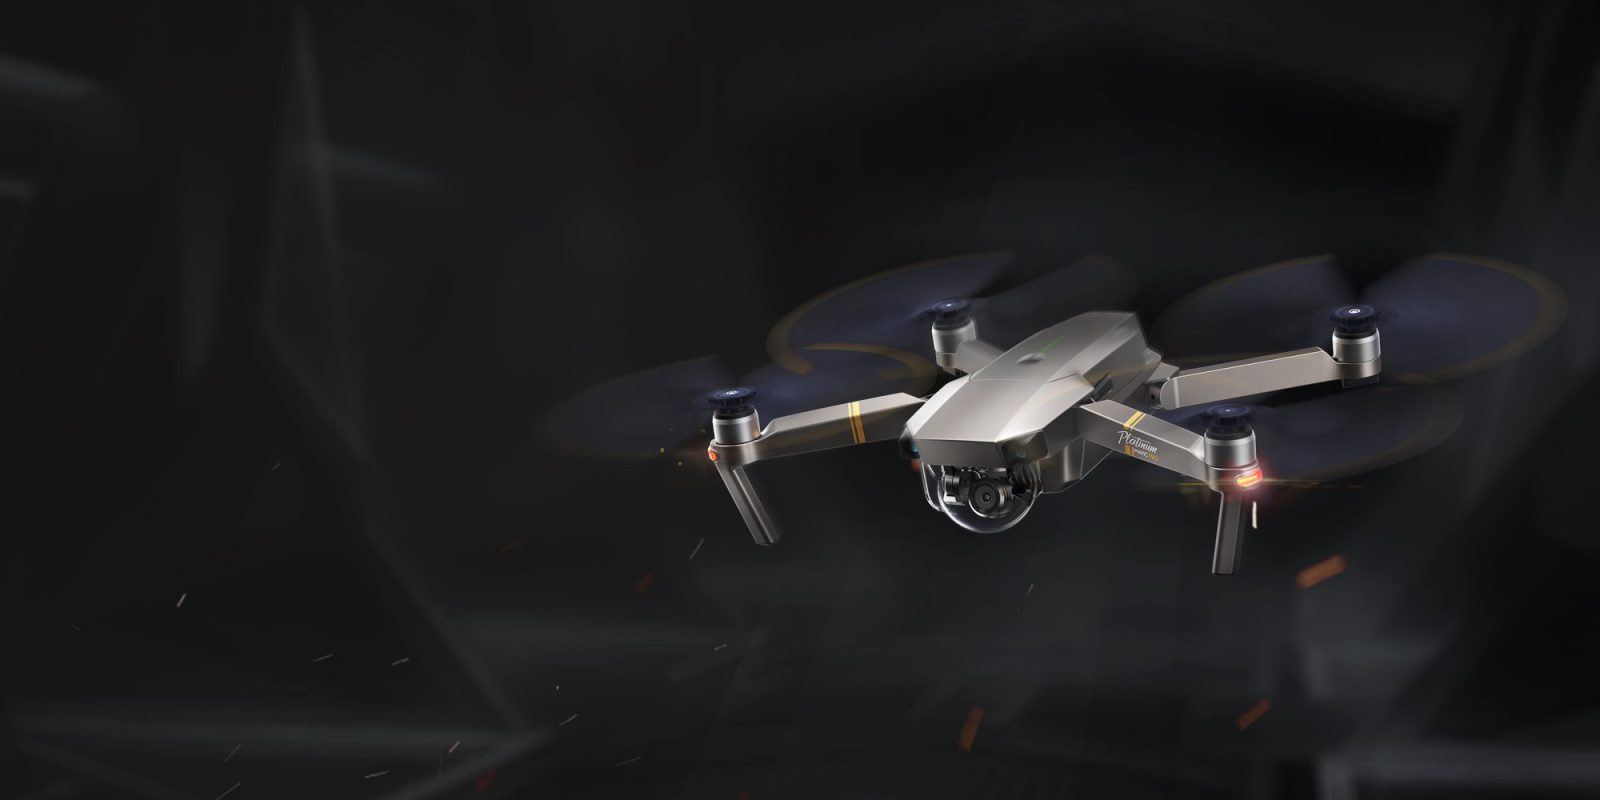 DJI Has Introduced Two New Drones To Its Product Lineup Today The Mavic Pro Platinum Brings A Quieter Flight Experience While Also Adding More